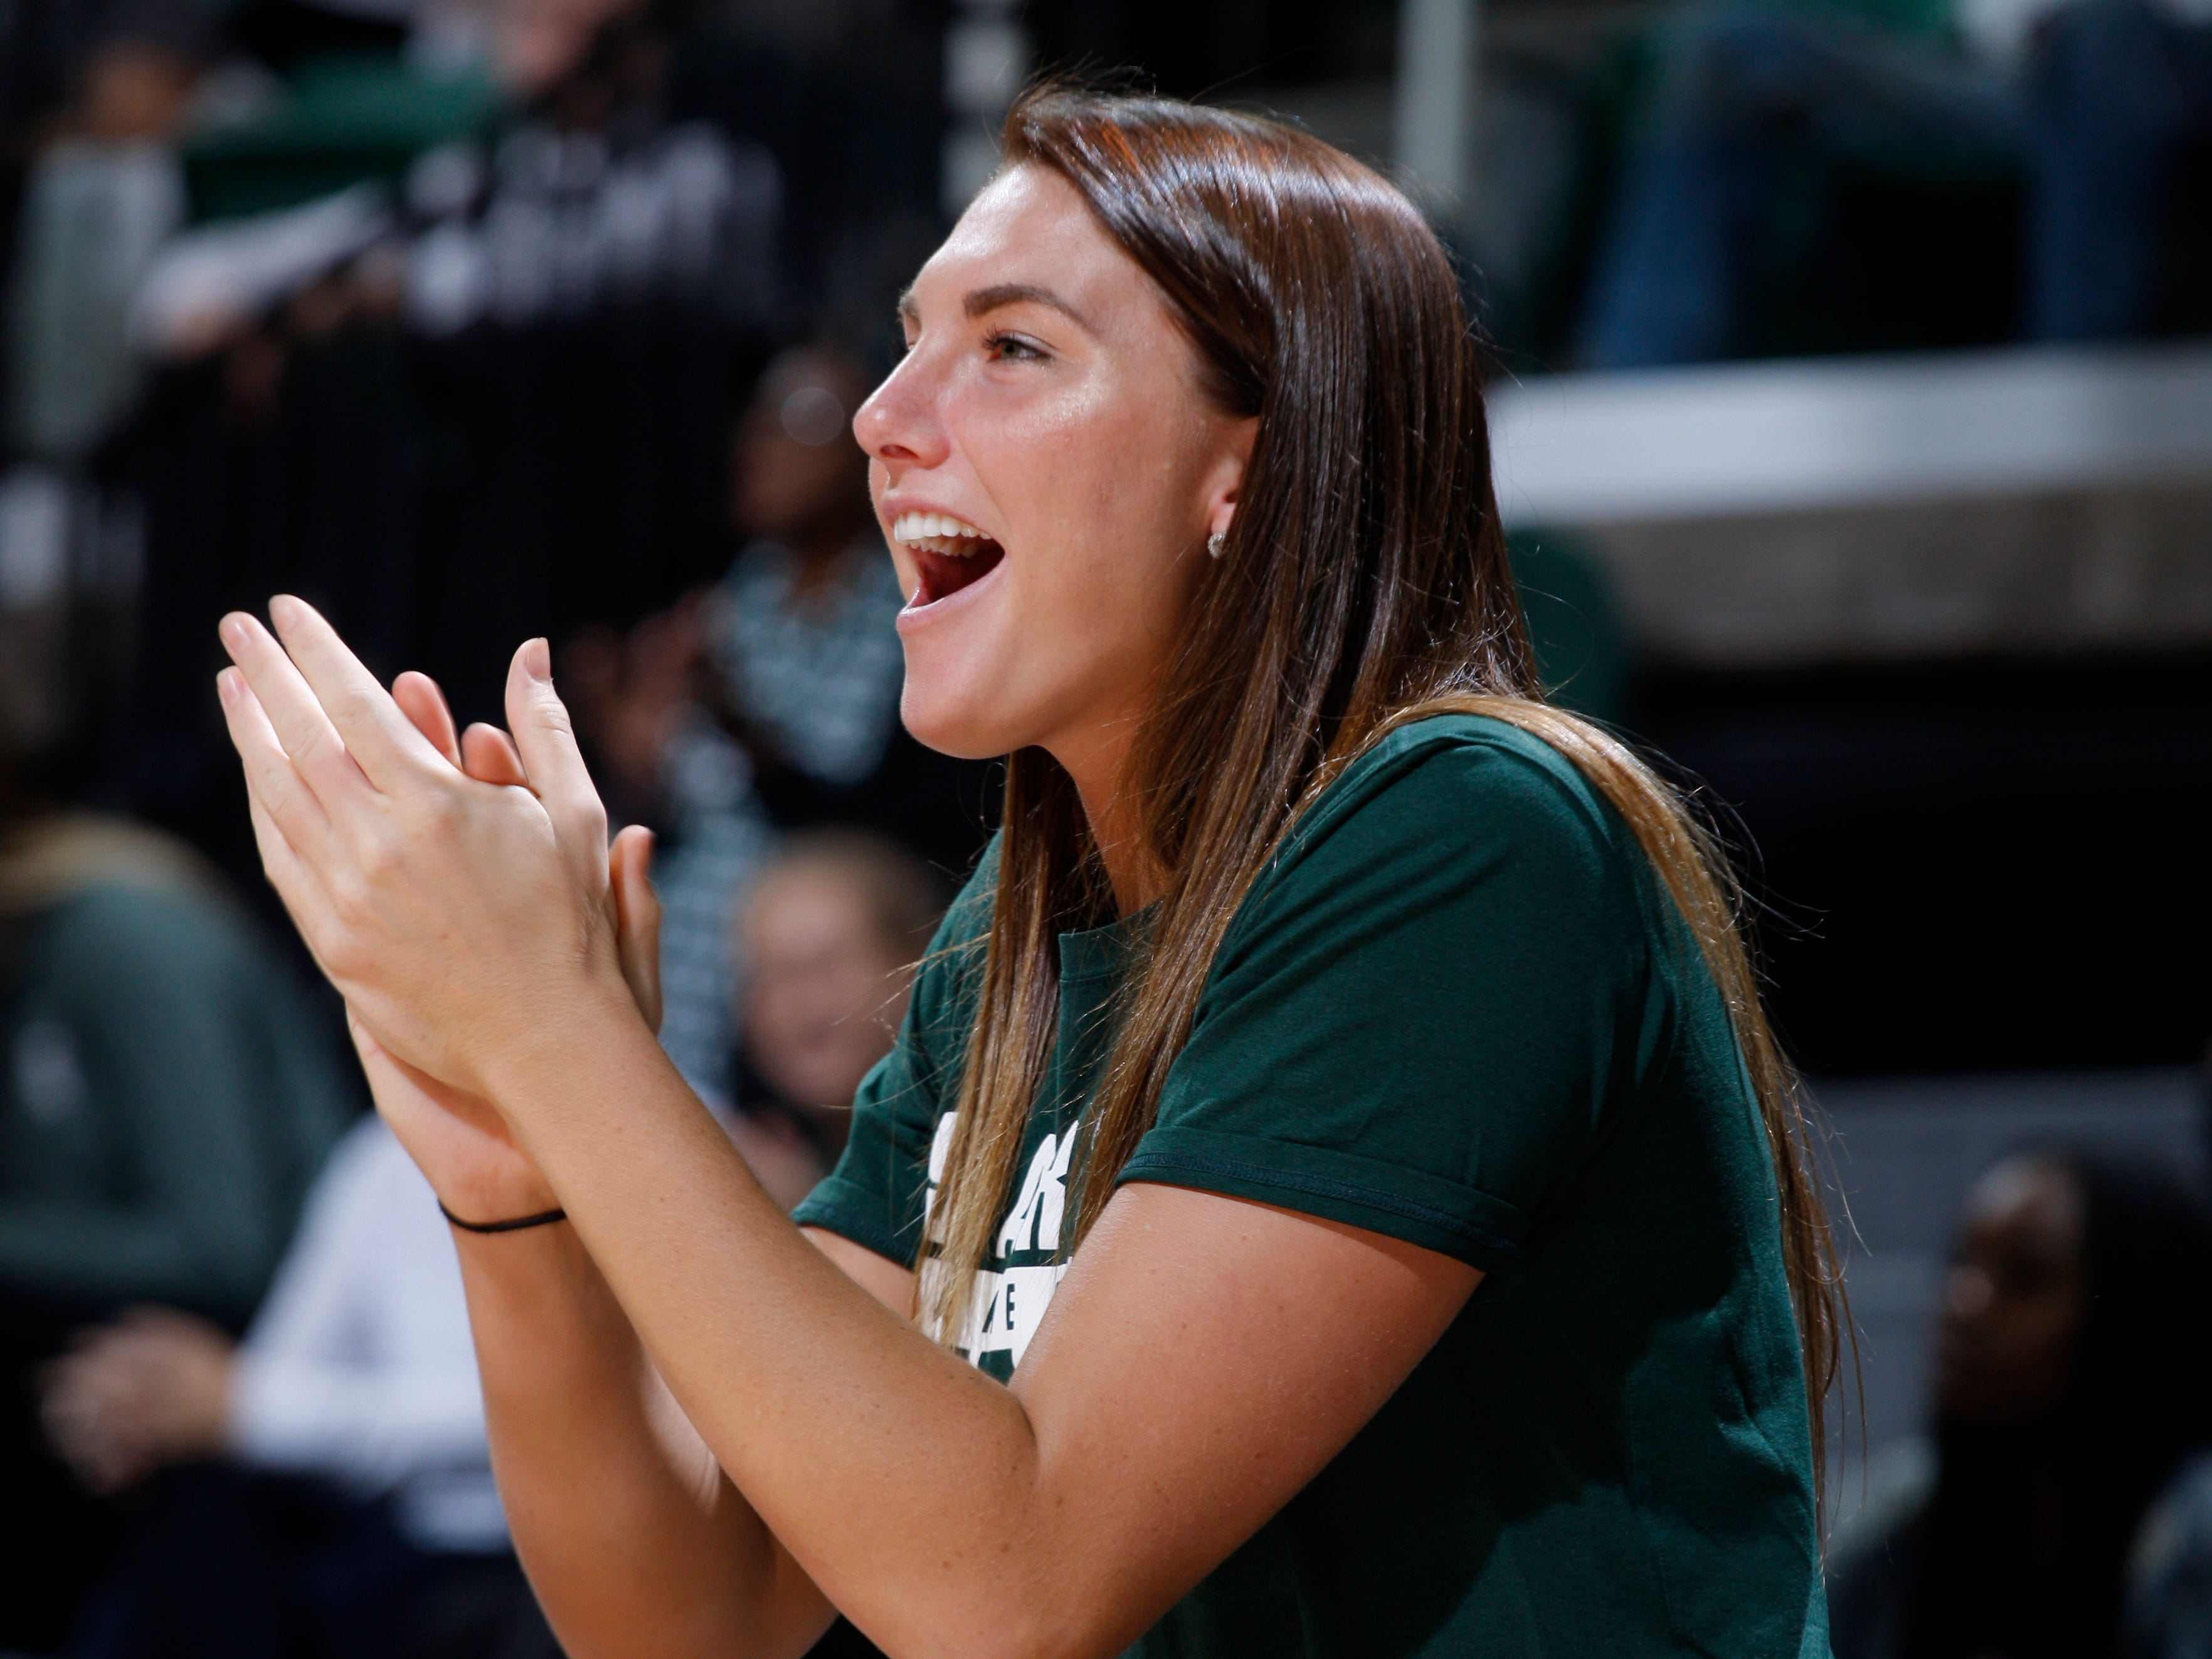 Michigan State's Kayla Belles cheers from the bench against Hillsdale, Thursday, Nov. 1, 2018, in East Lansing, Mich.